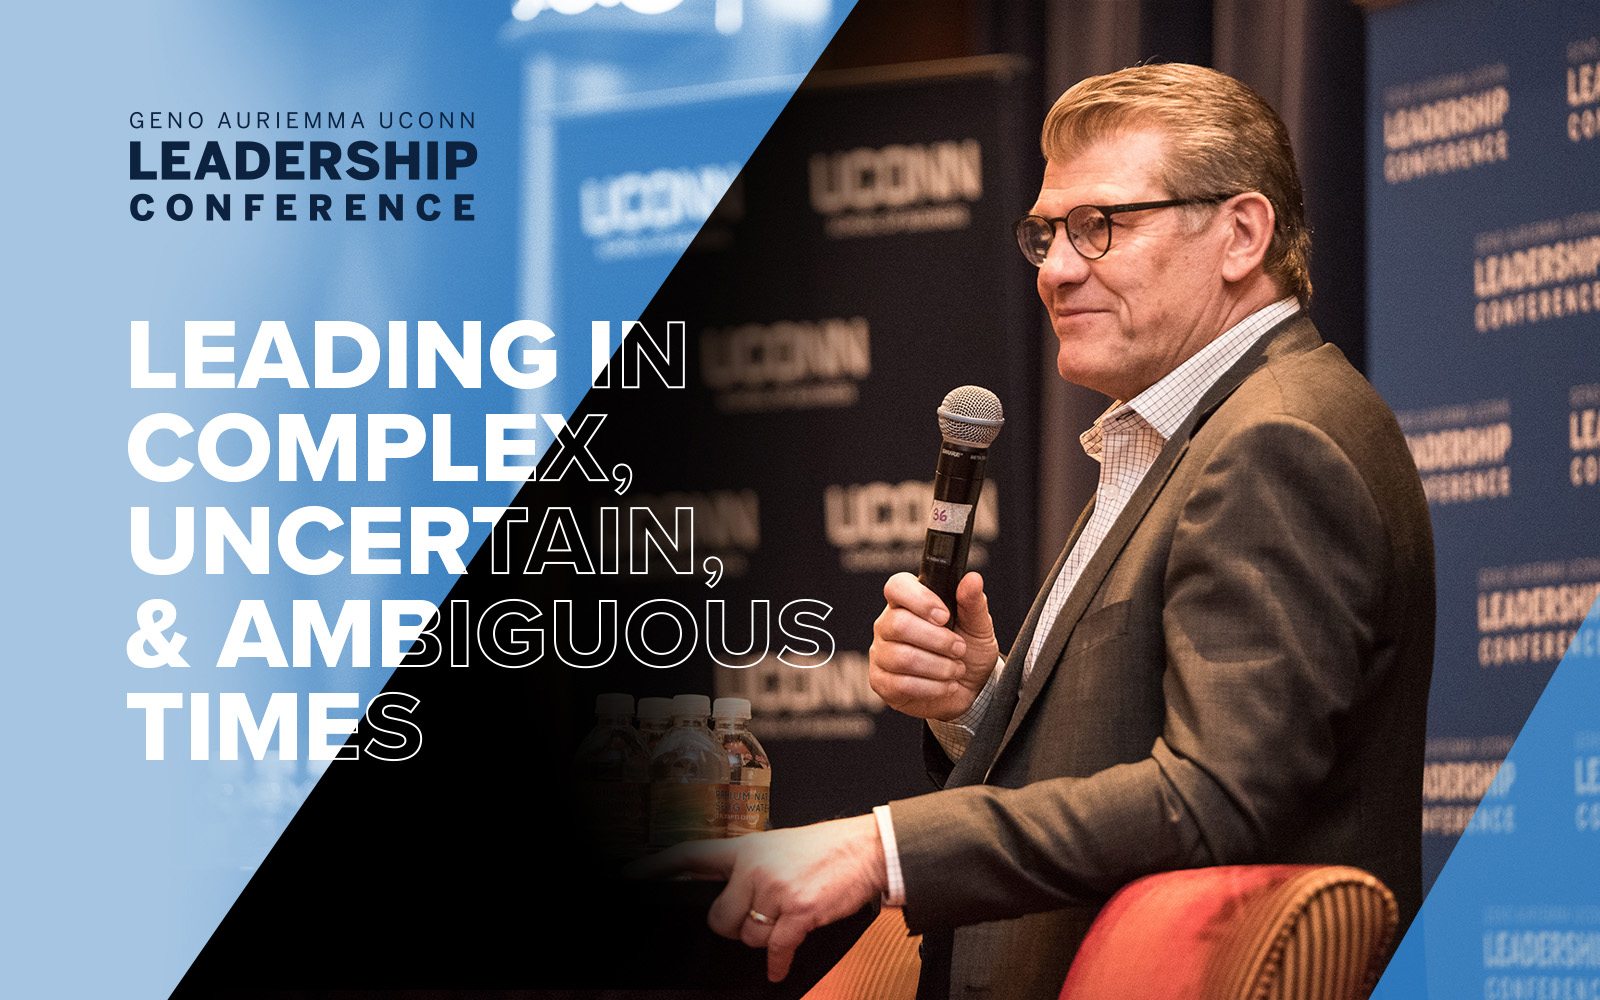 2019 Geno Auriemma Leadership Conference